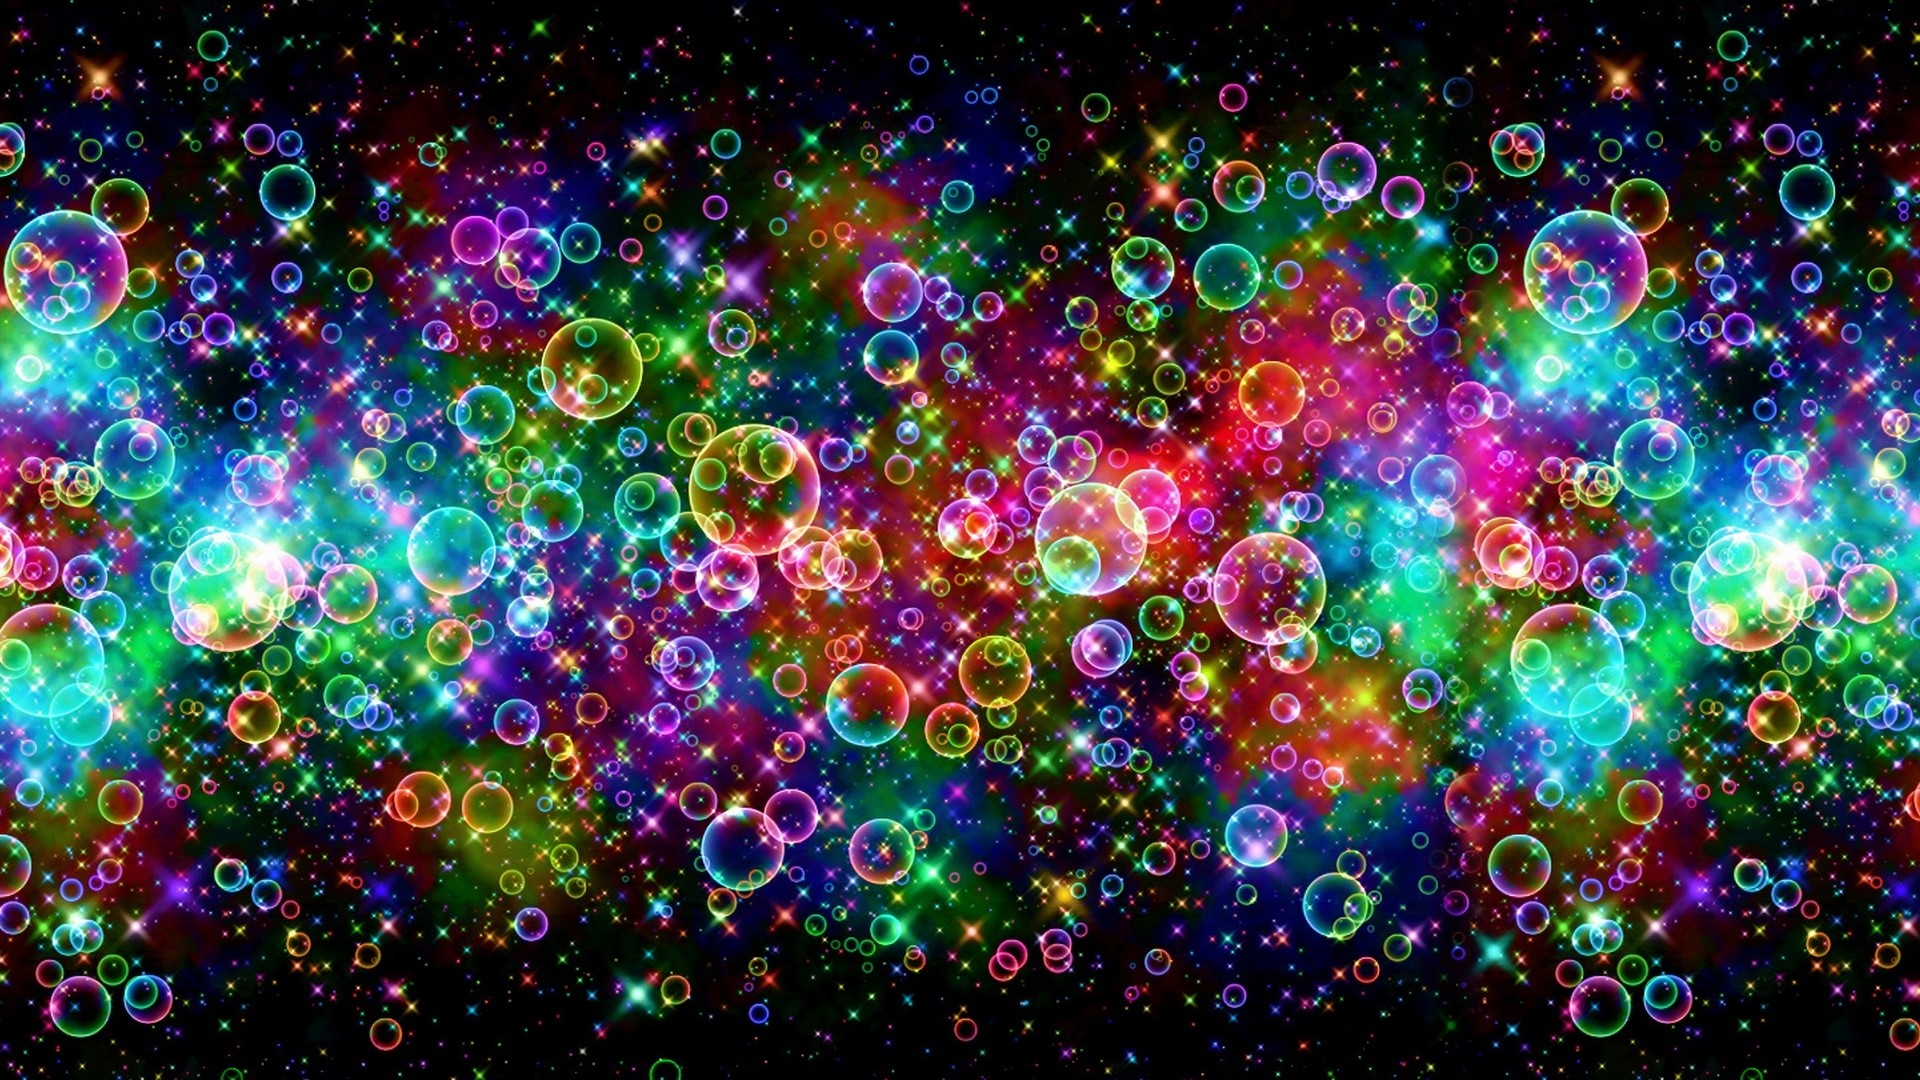 Colorful Bubbles | Colorful Bubbles – HD Wallpapers | Smashing HD Wallpapers